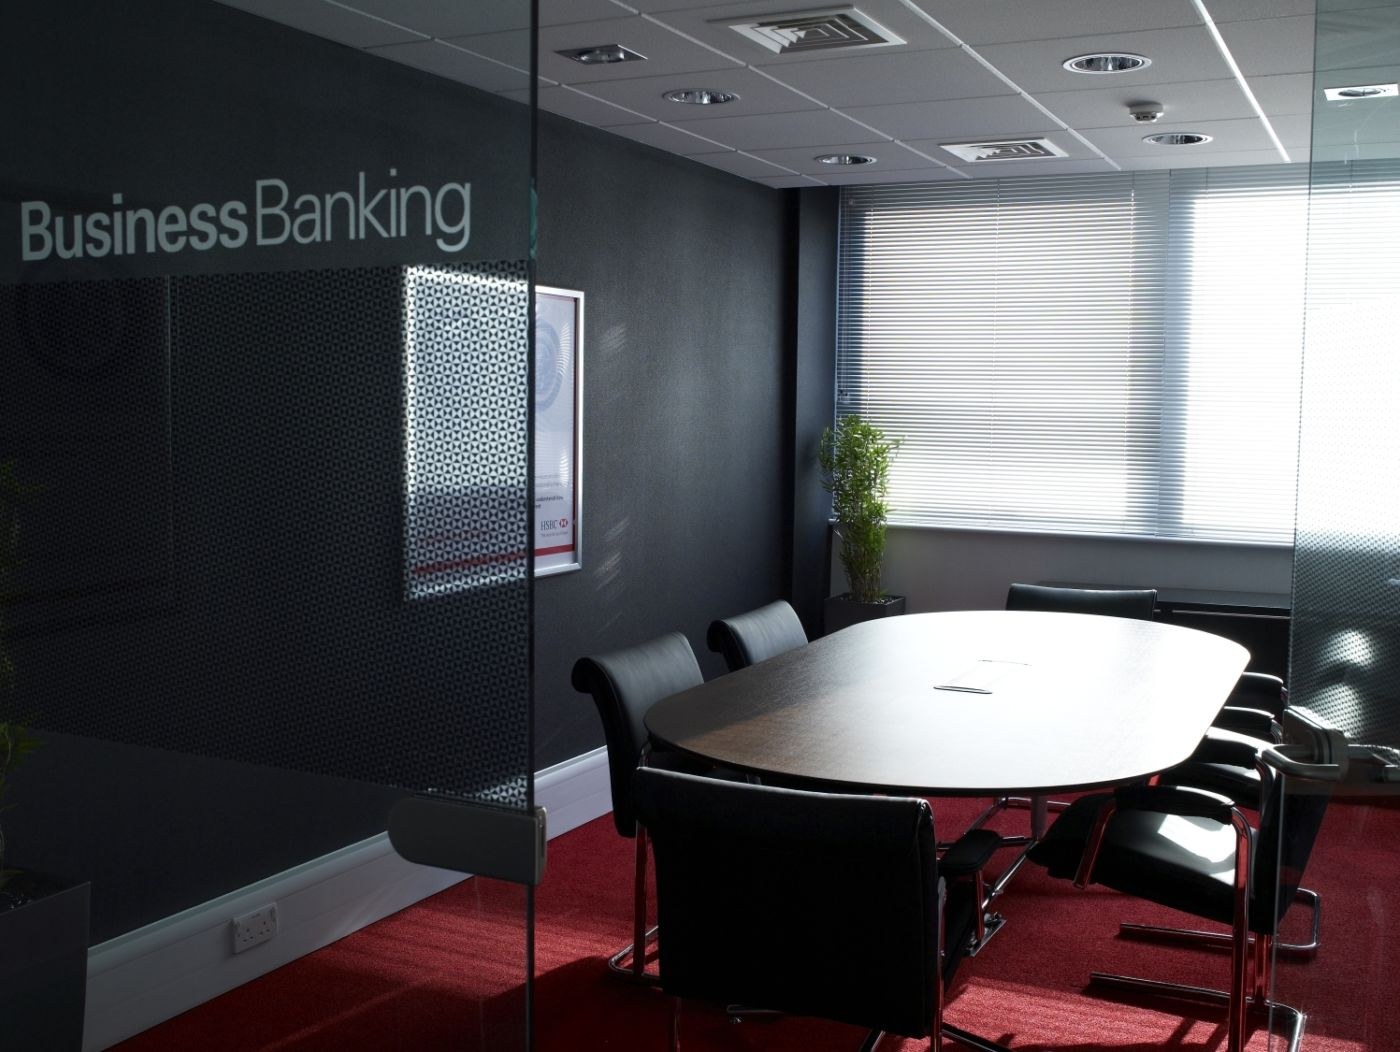 Meeting room in retail bank fit out